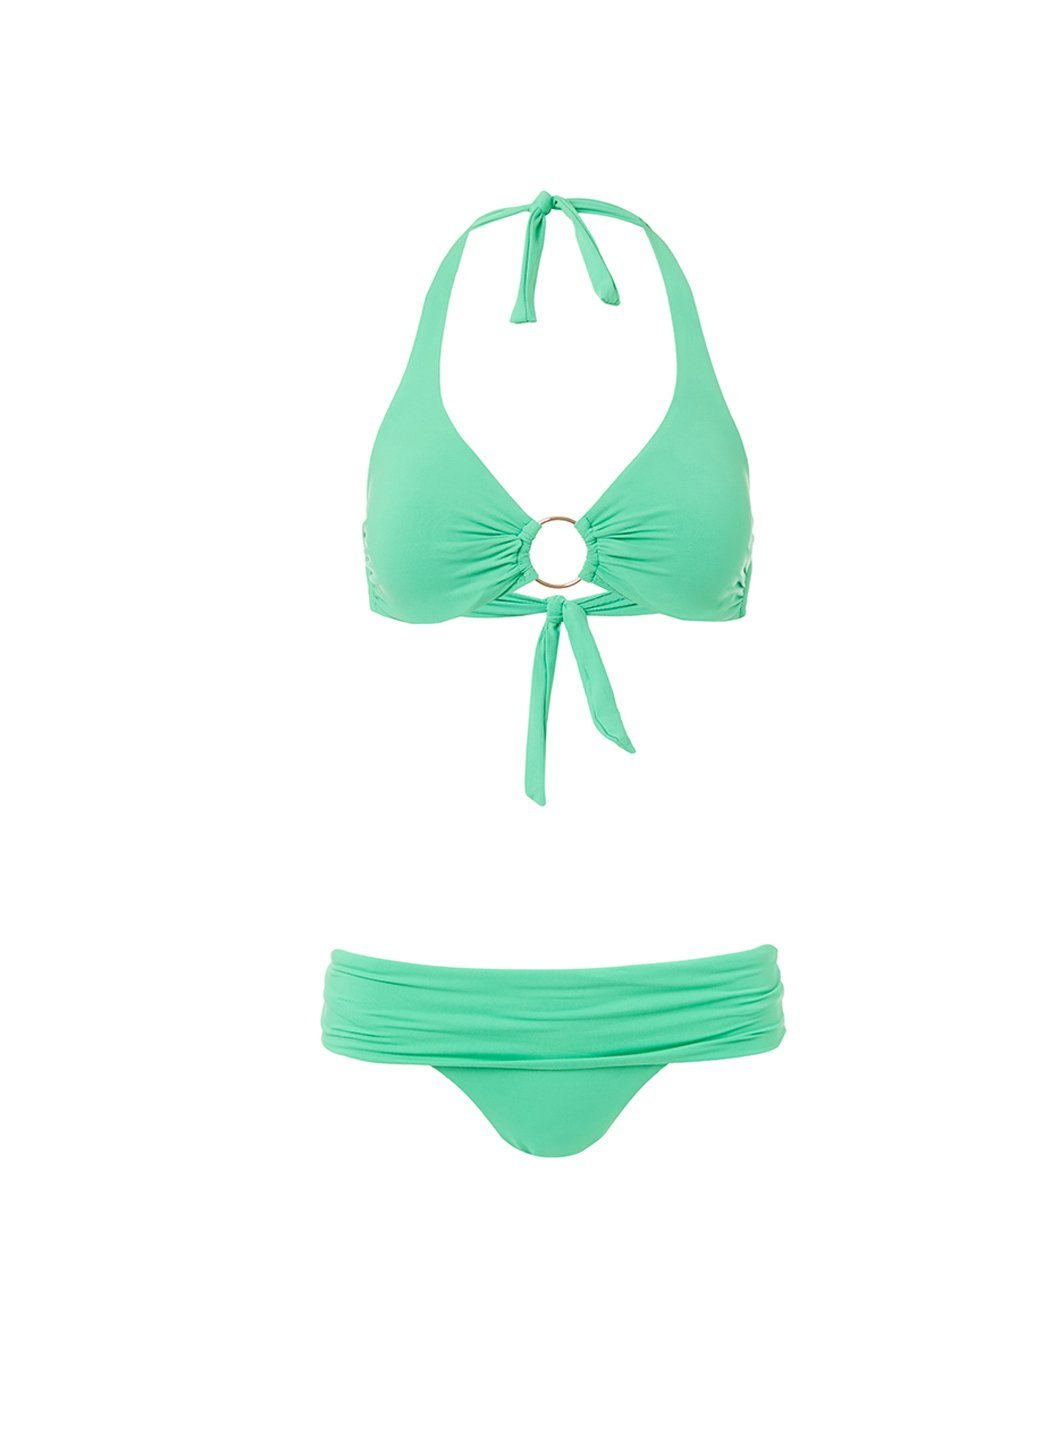 brussels green halterneck ring supportive bikini 2019